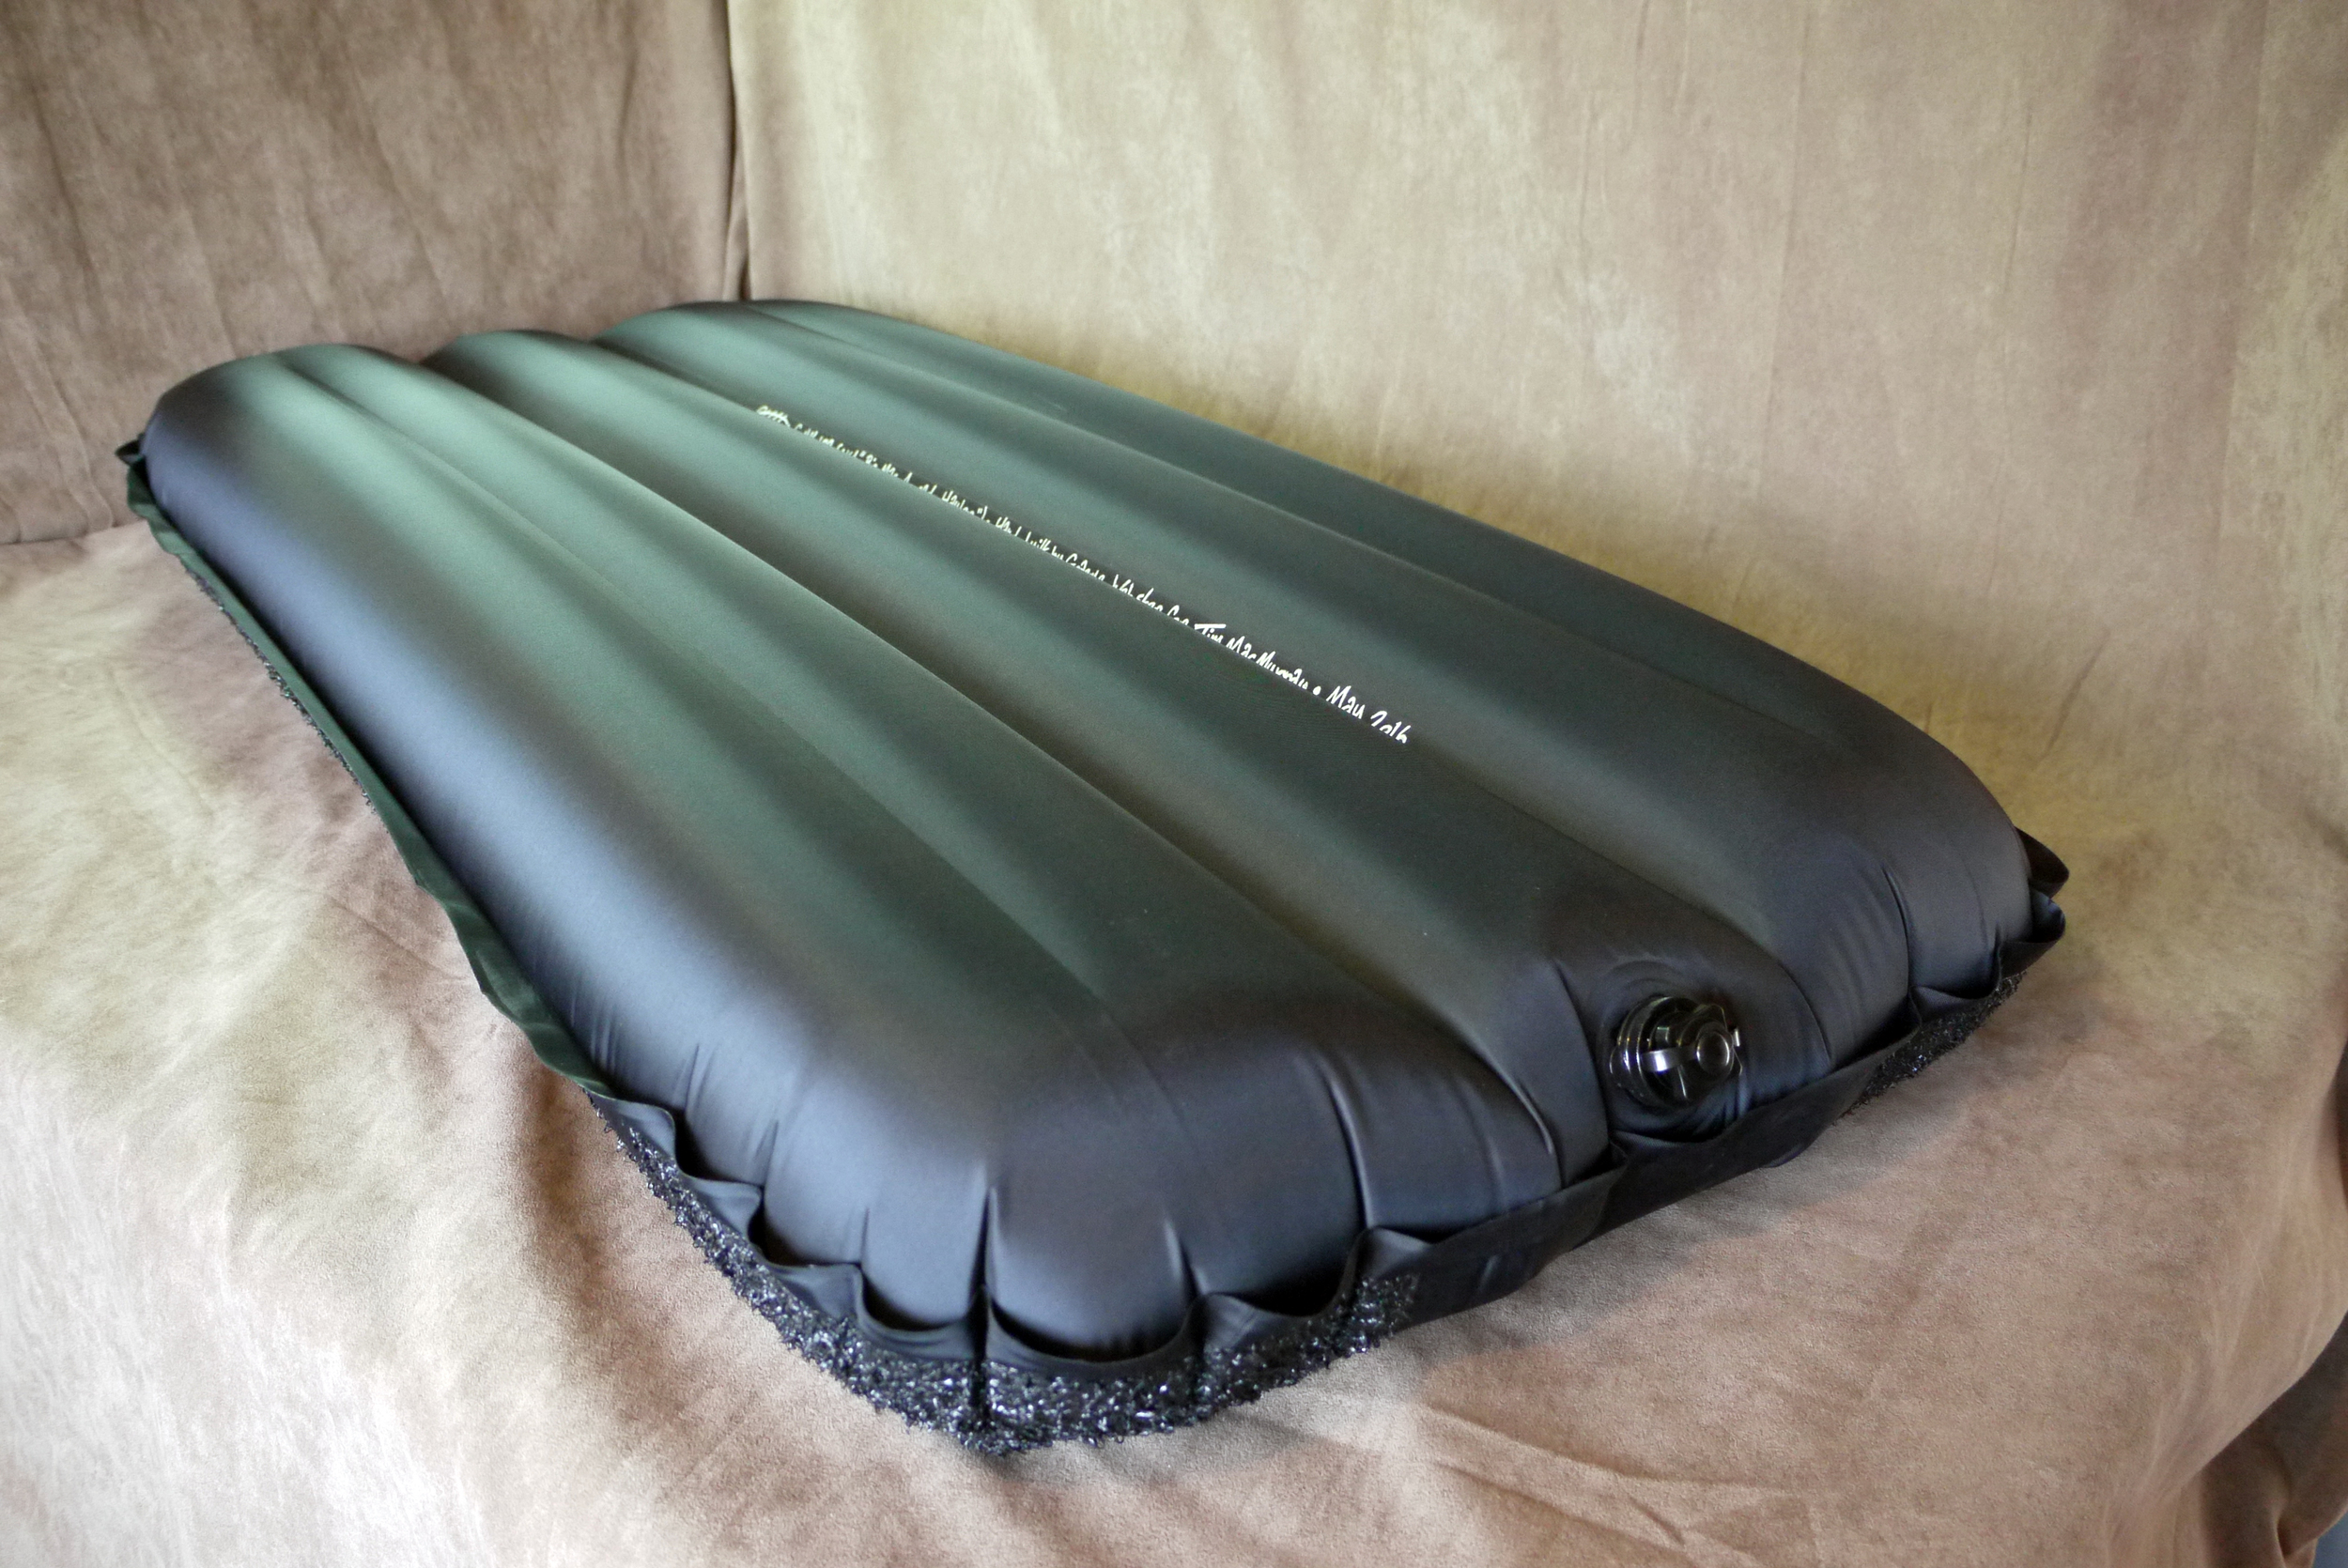 Surfmat surf mat Big Mac Avocado Hauler Tim MacMurray Bottom